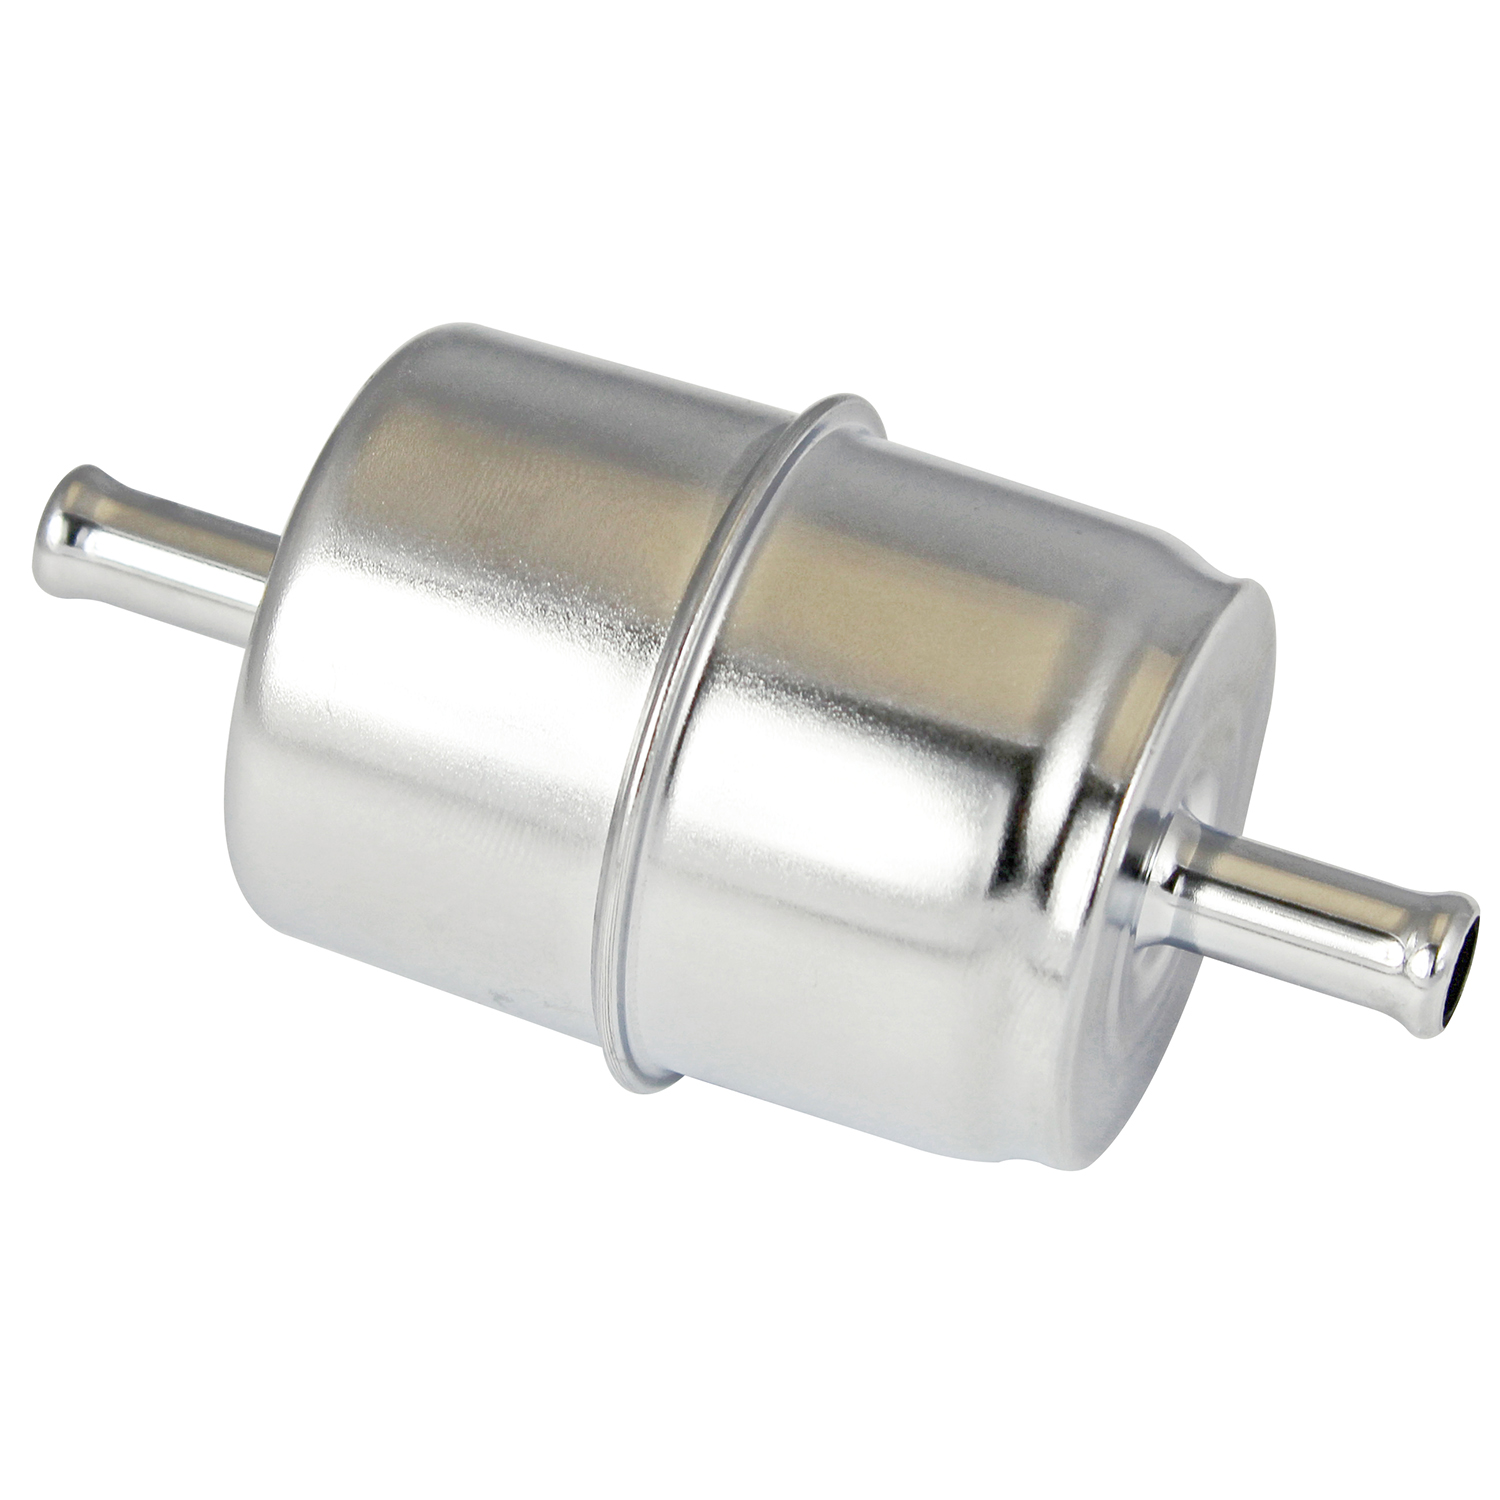 hight resolution of power products chrome inline fuel filter 3 8 inlet outlet